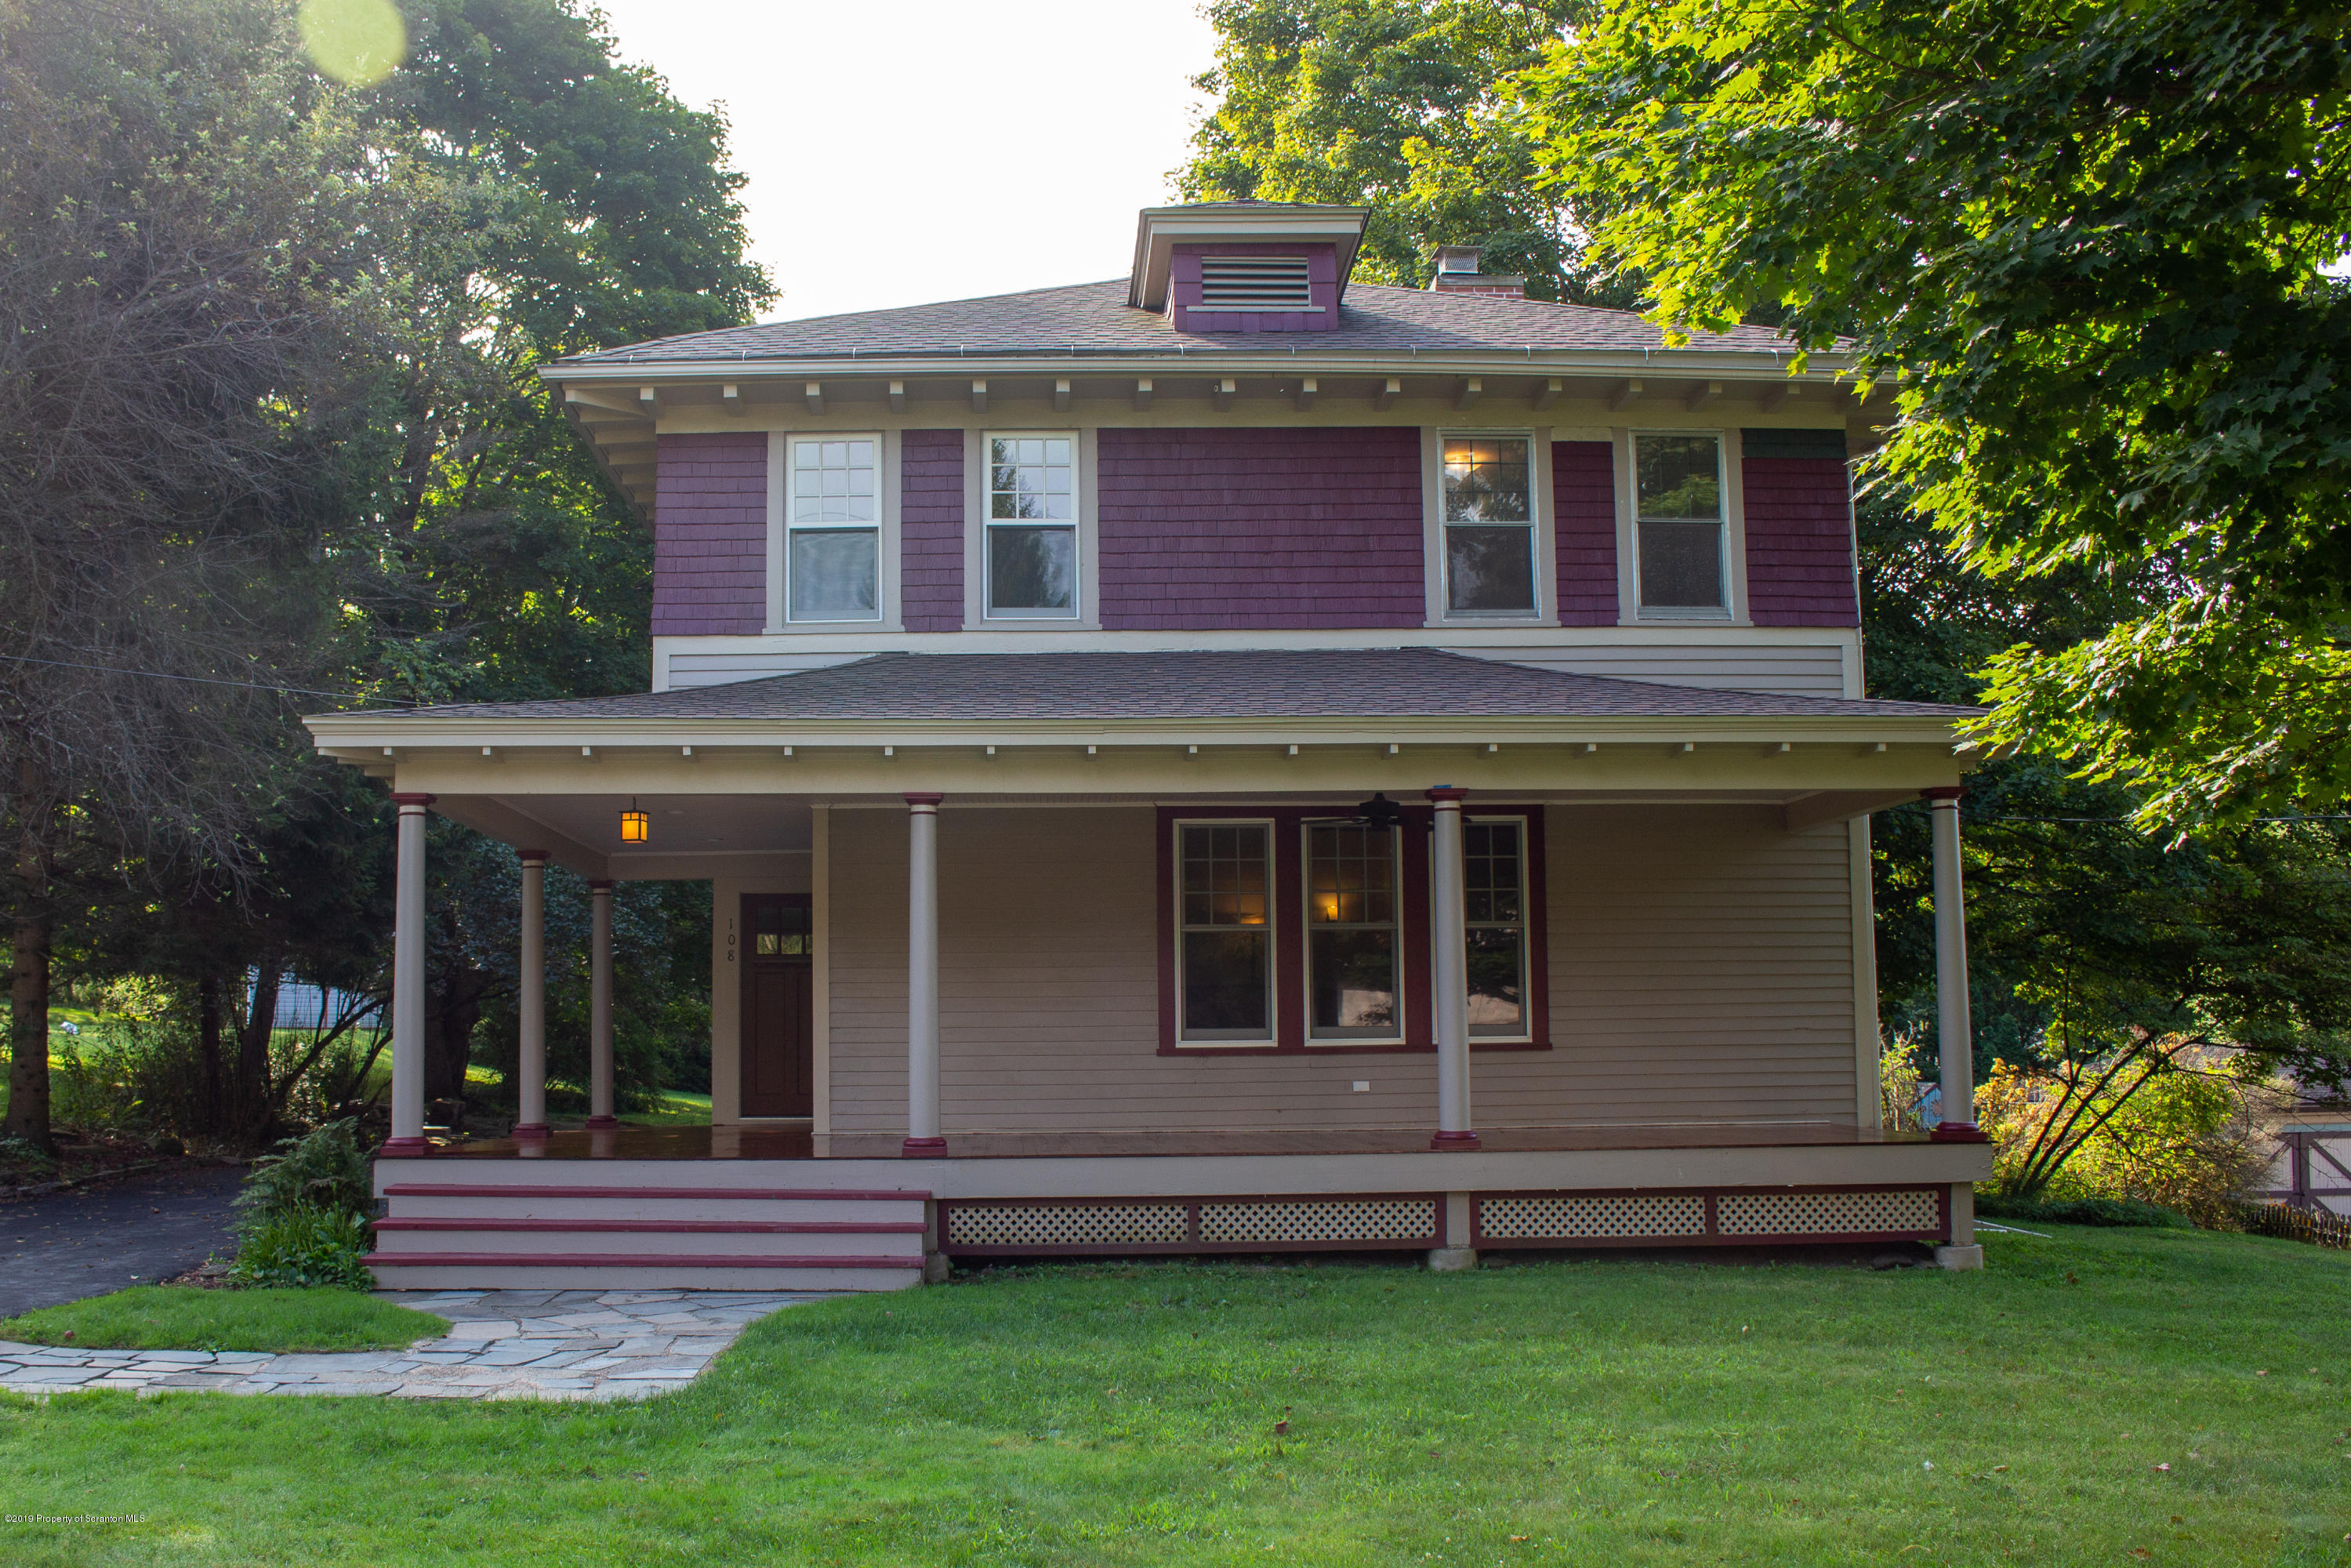 108 Lake St, Dalton, Pennsylvania 18414, 4 Bedrooms Bedrooms, 7 Rooms Rooms,2 BathroomsBathrooms,Single Family,For Sale,Lake,19-4094